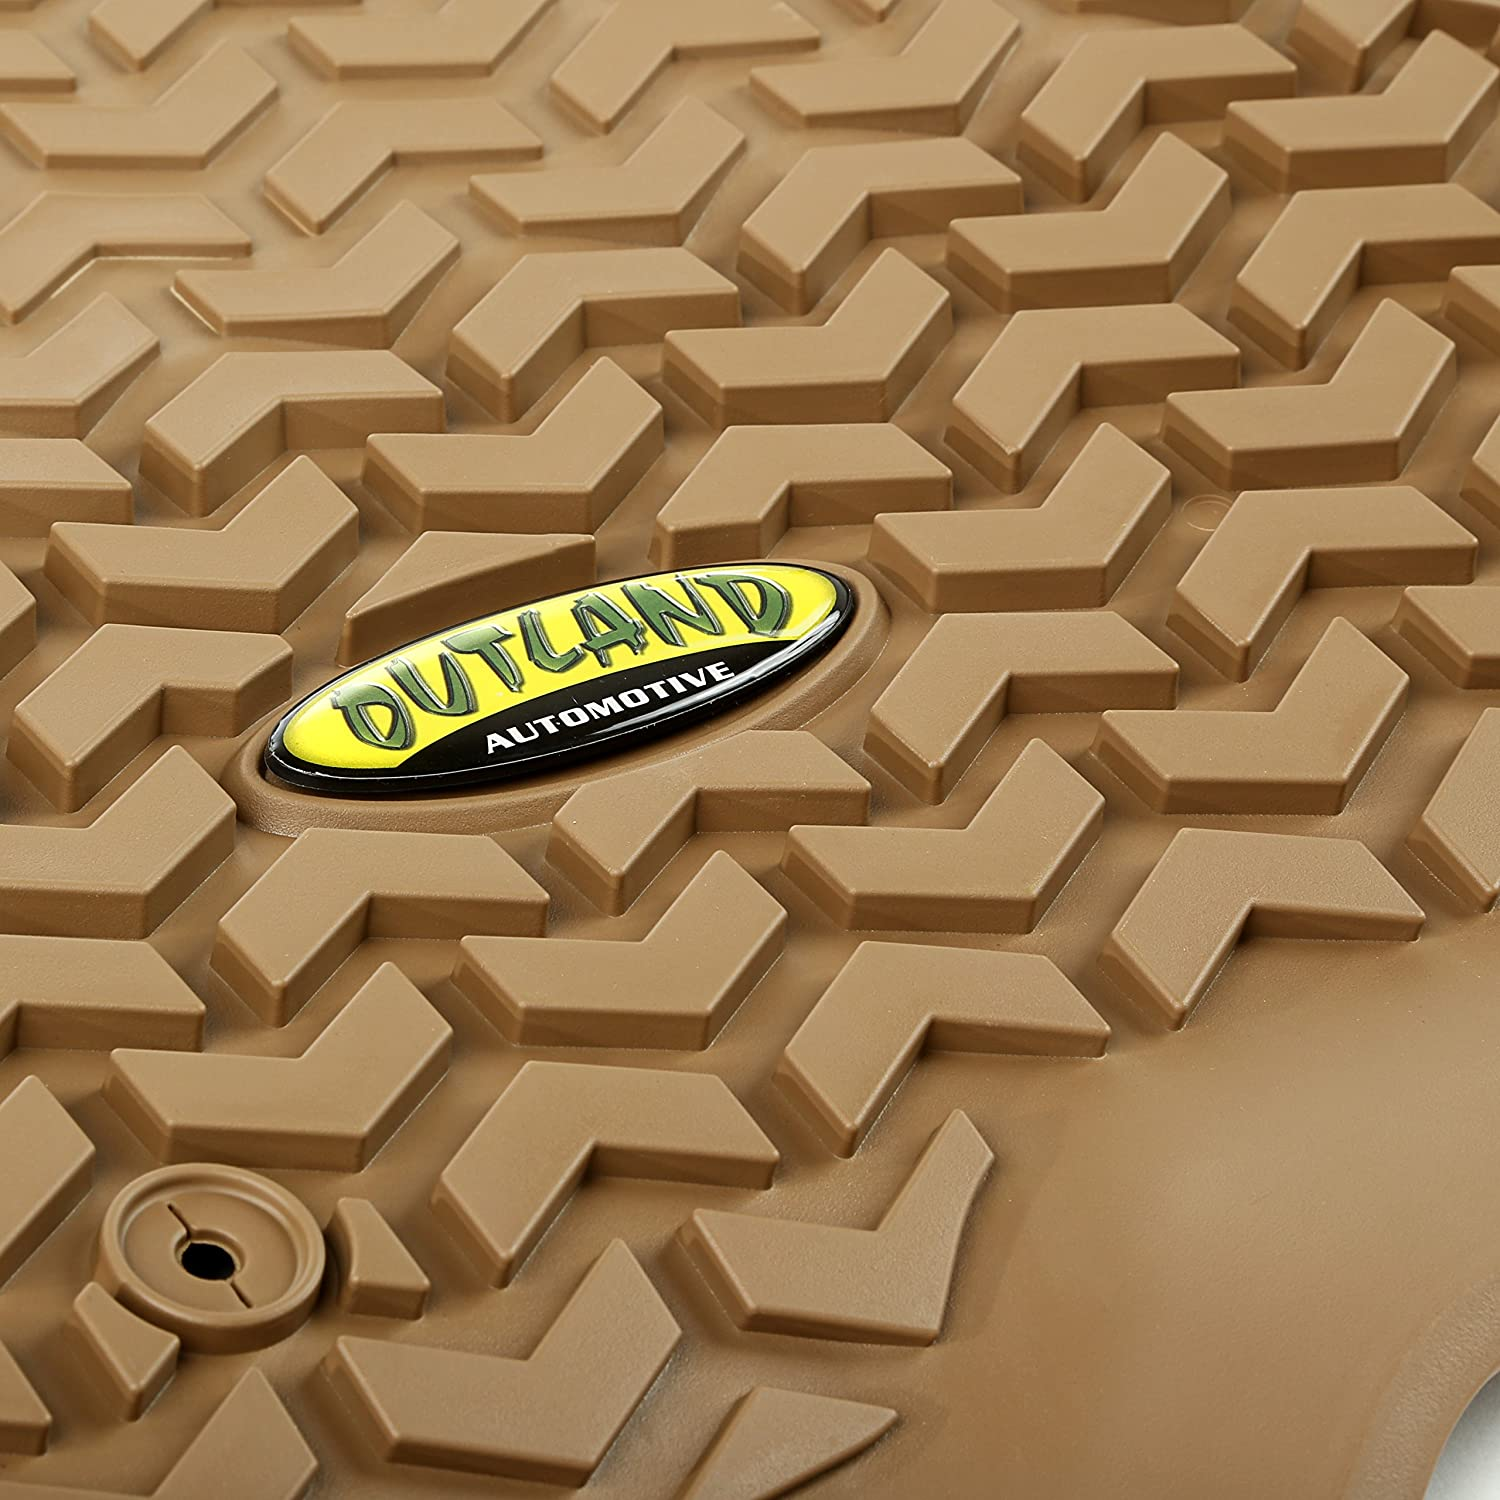 Outland 398490201 Grey Front Row Floor Liner For Select Ford F-150 and Lincoln Mark LT Models